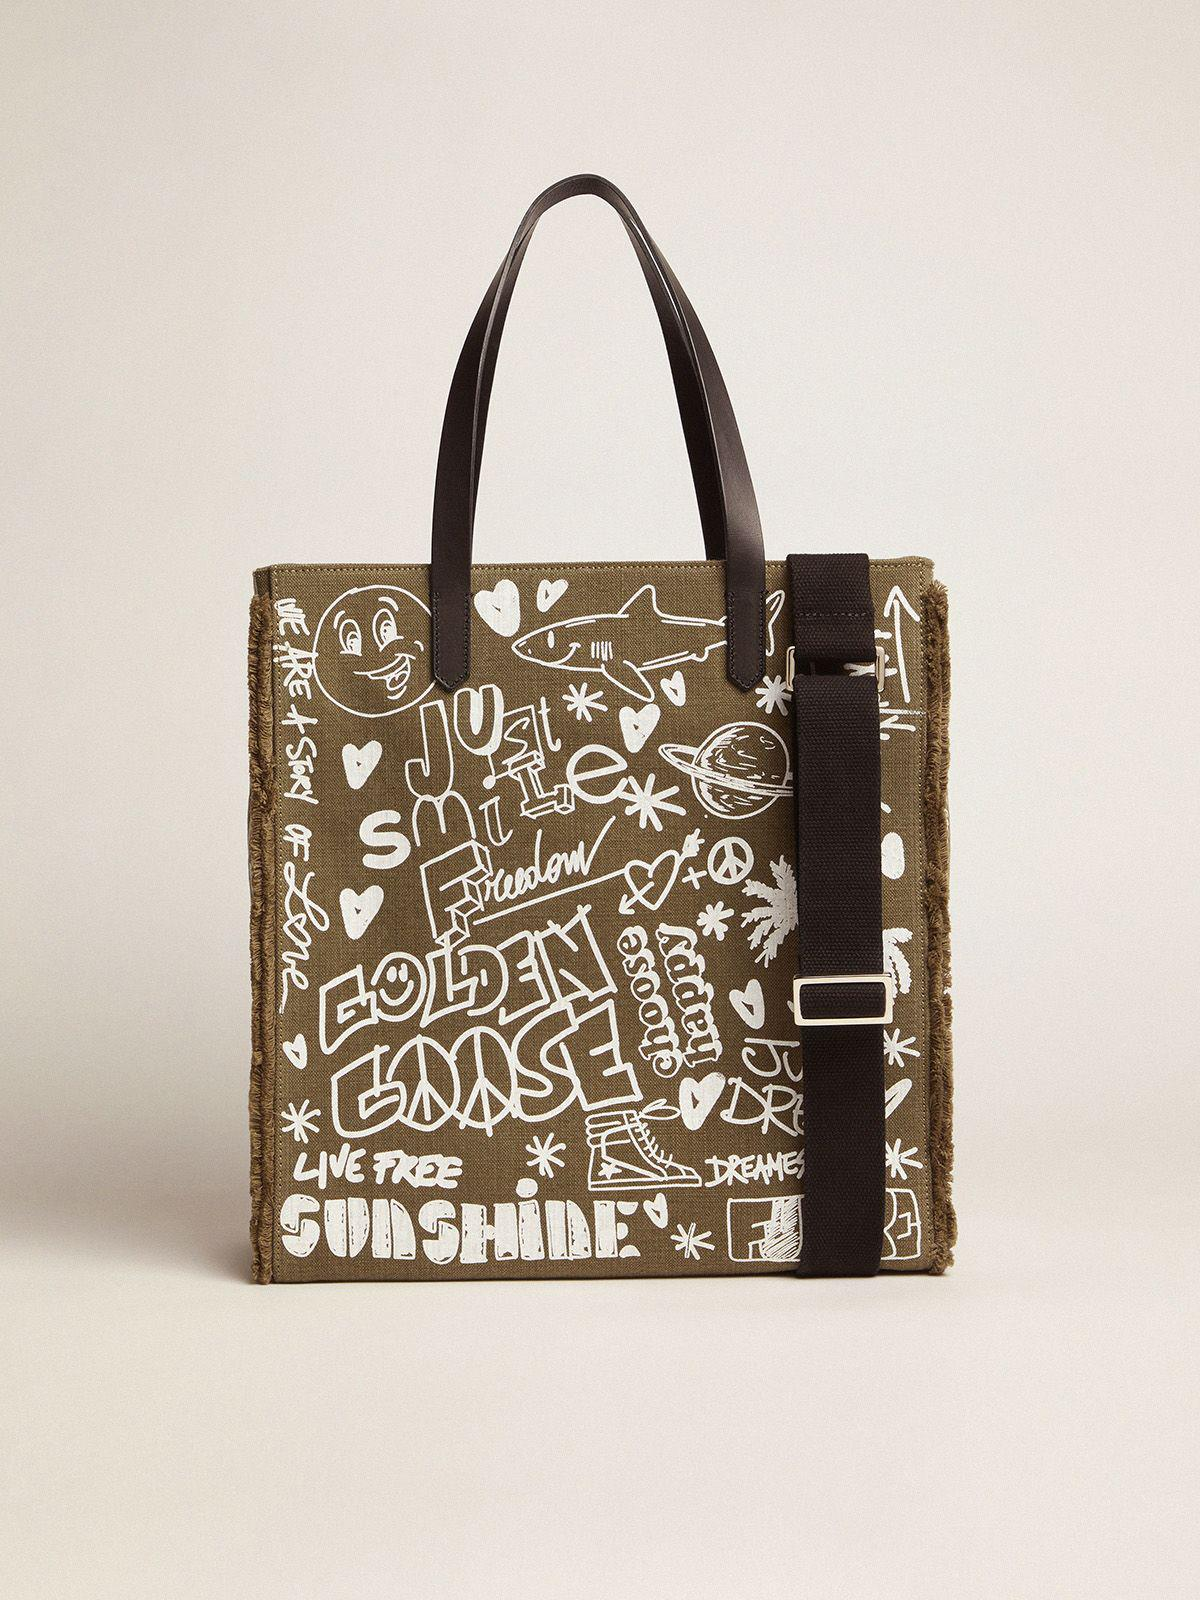 North-South California Bag in military green canvas with graffiti 1